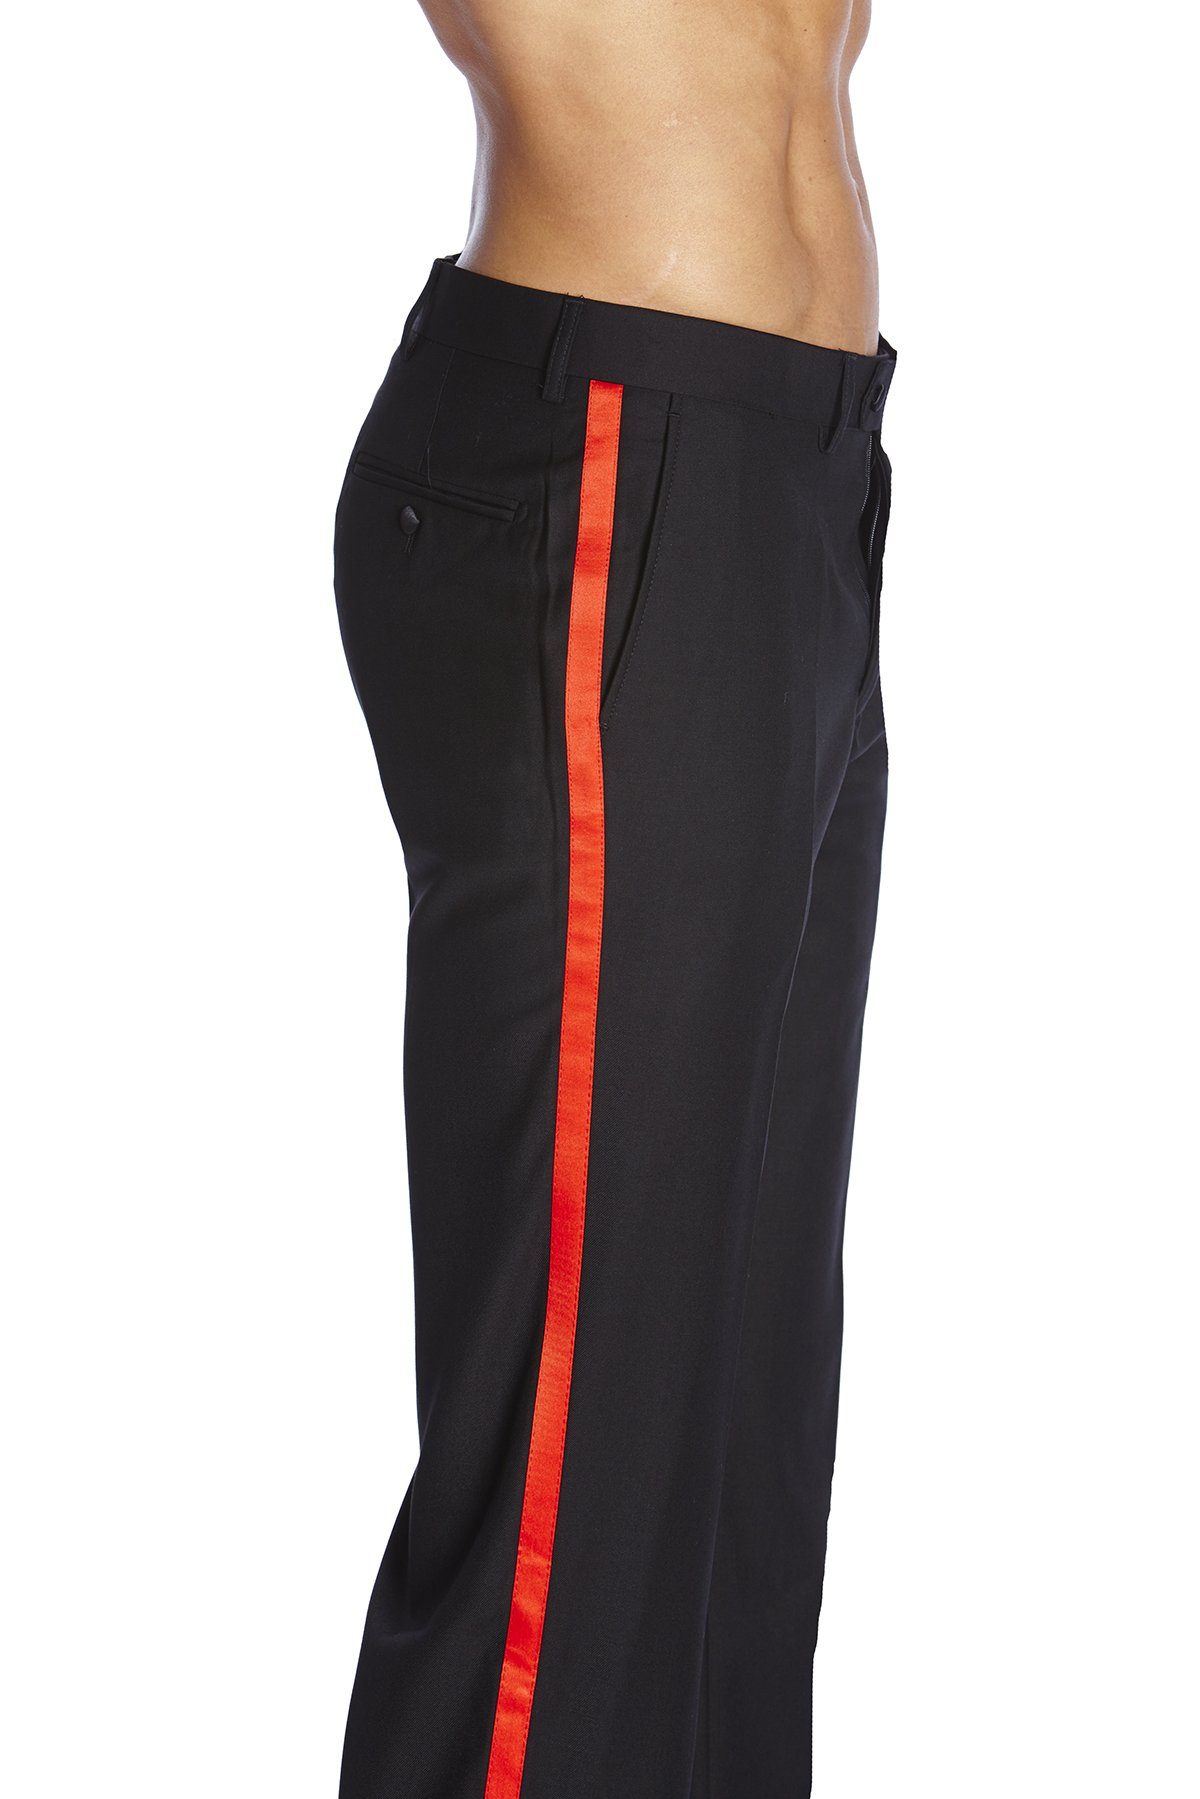 CONCITOR Men's TUXEDO Pants Flat Front with RED Satin Band Black Color 34